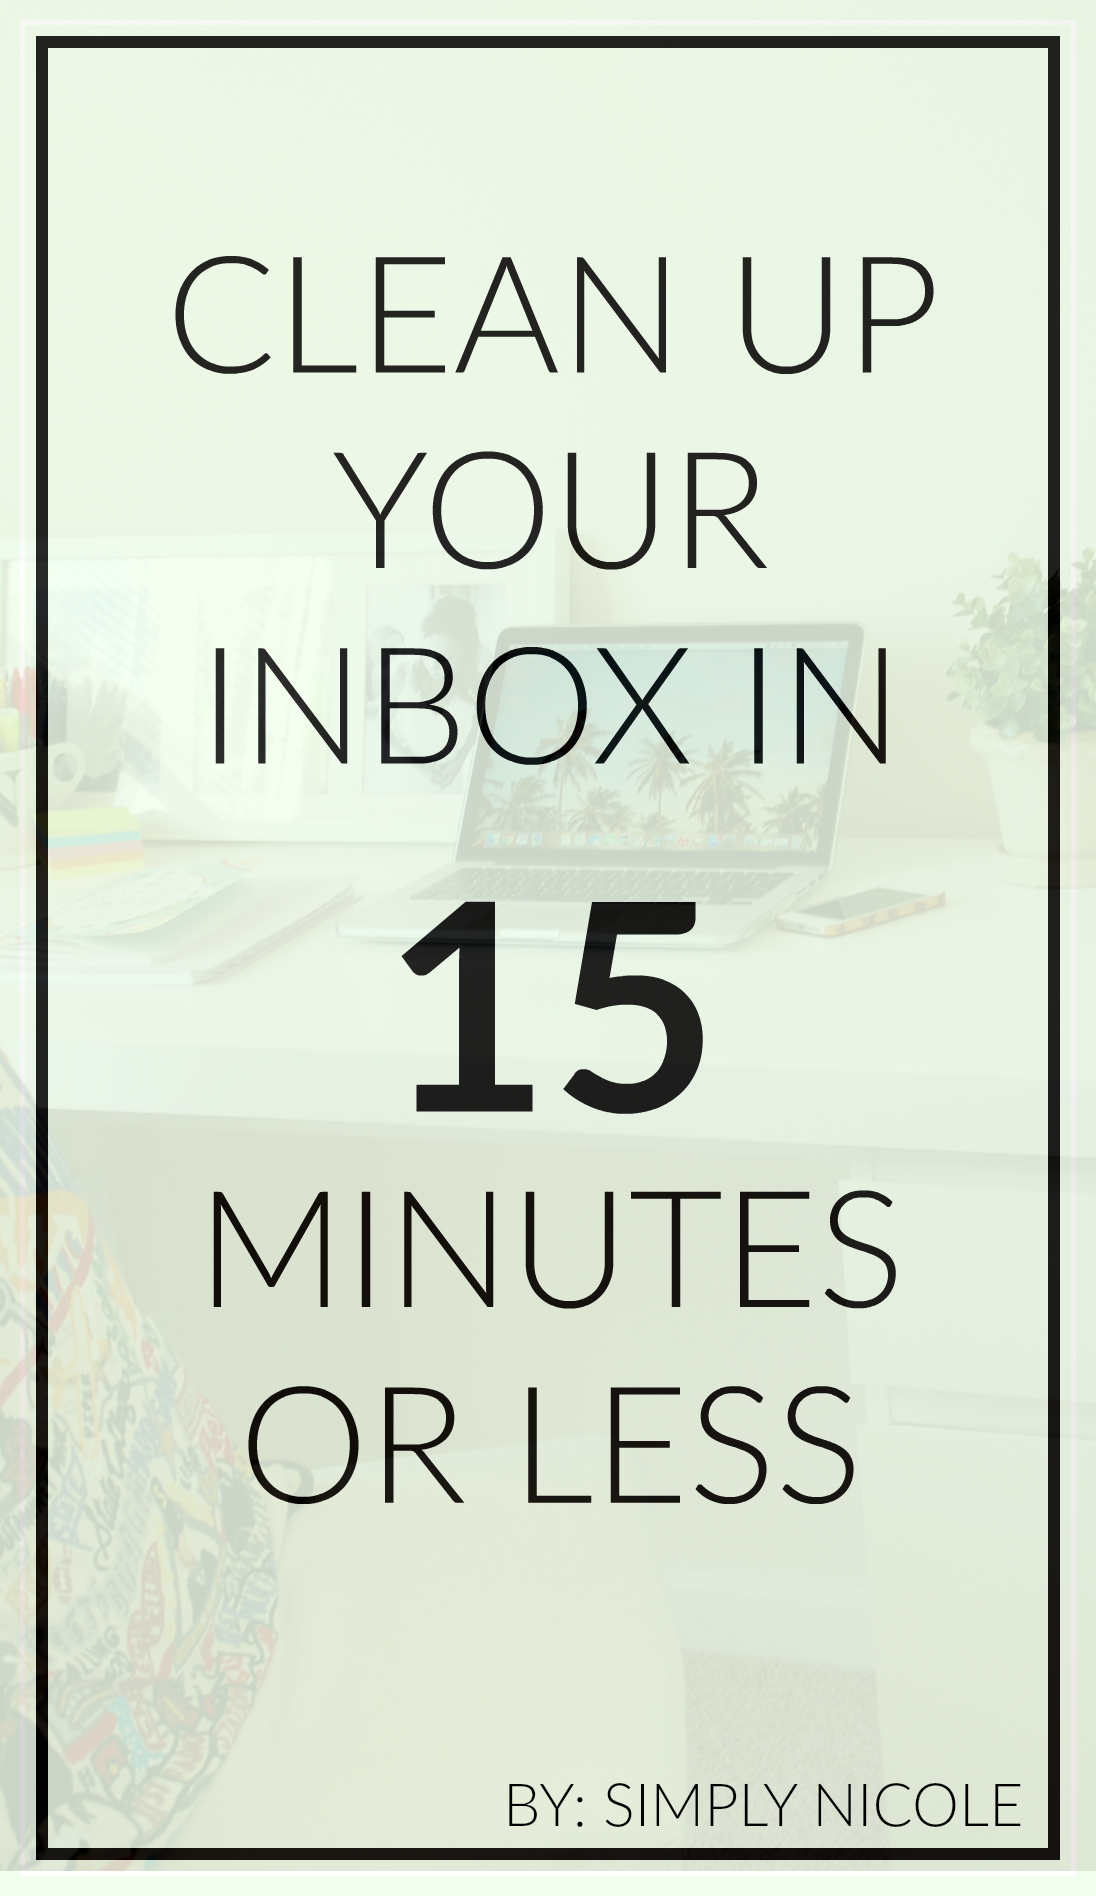 Clean up your inbox in 15 minutes or less